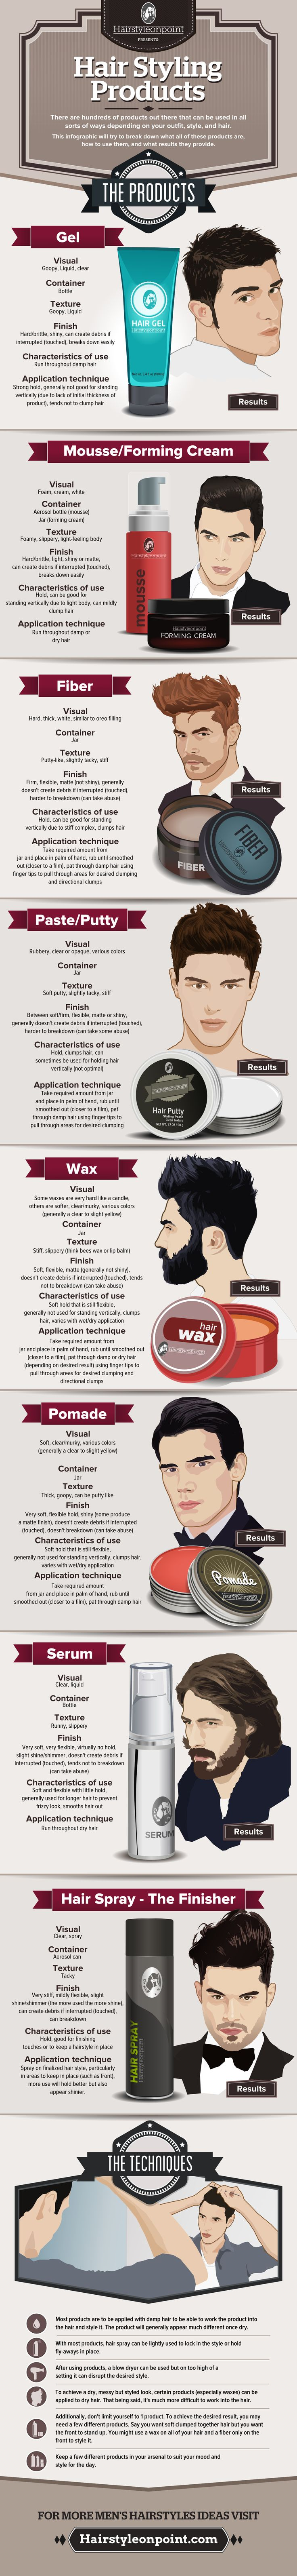 Find Men Grooming & Fashion Accessories @ www.paparussos.com   Hair Styling Products_150ppp